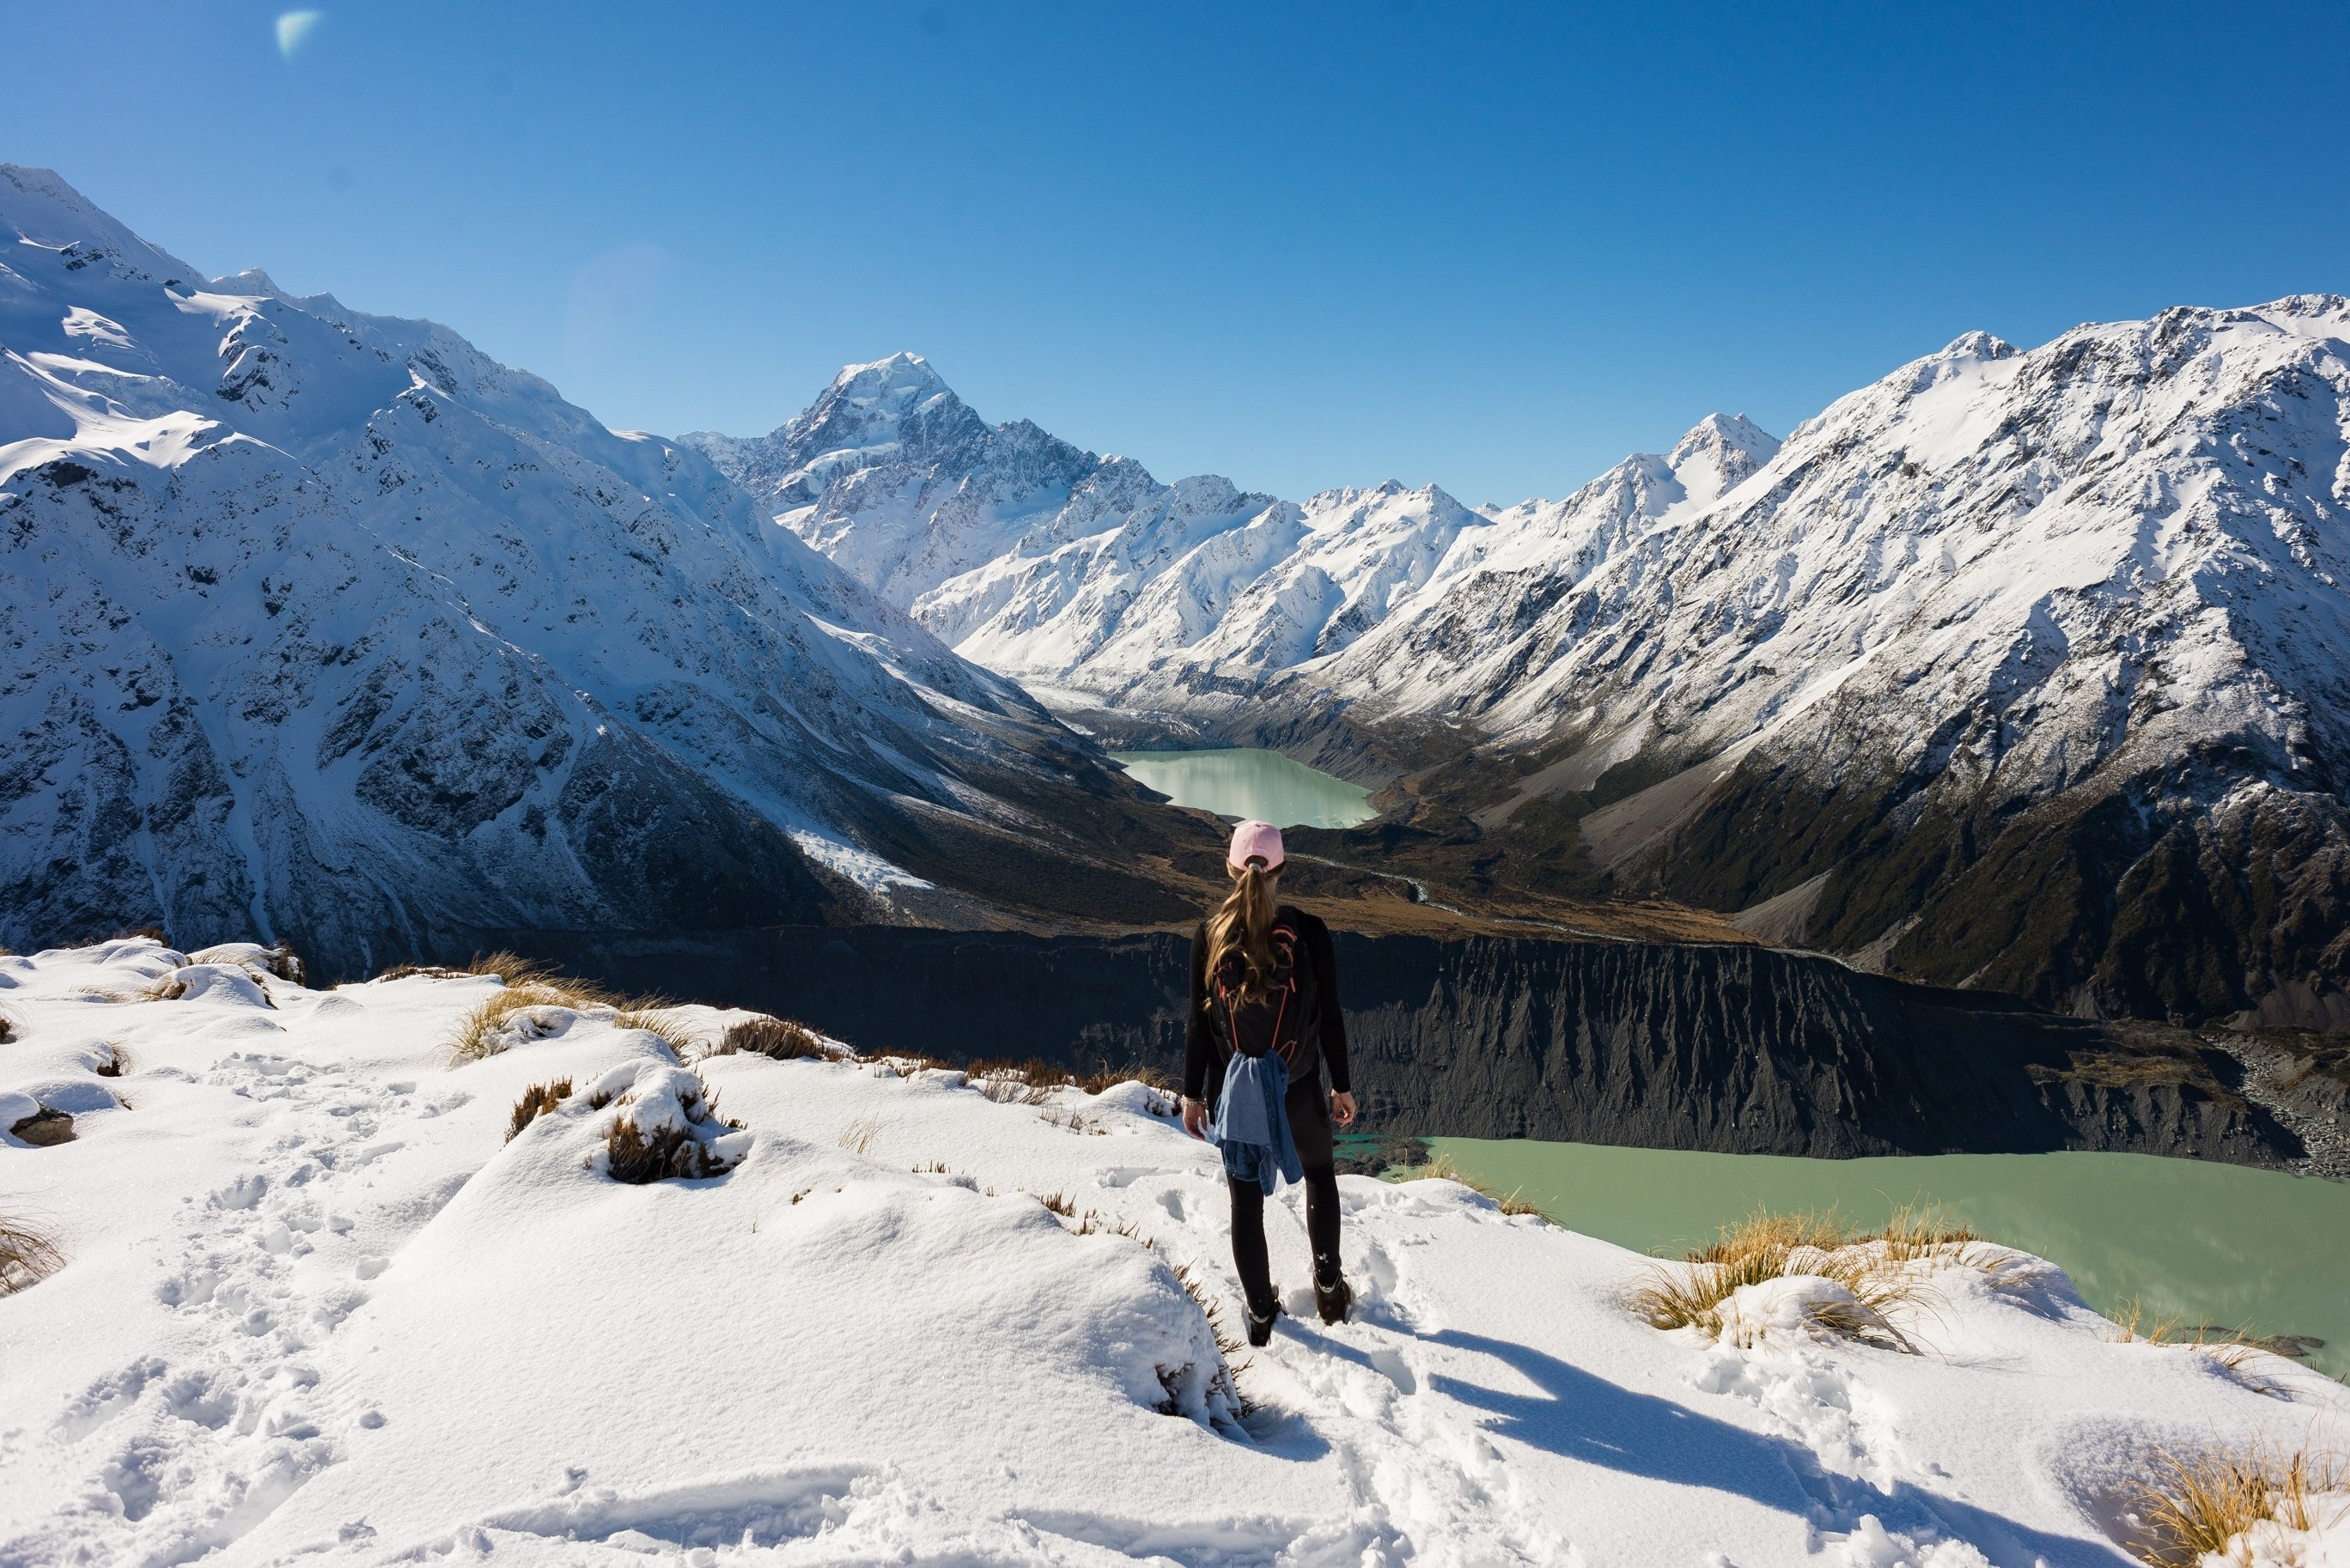 This is the view from the Sealy Tarns track in Mount cook National Park, New Zealand